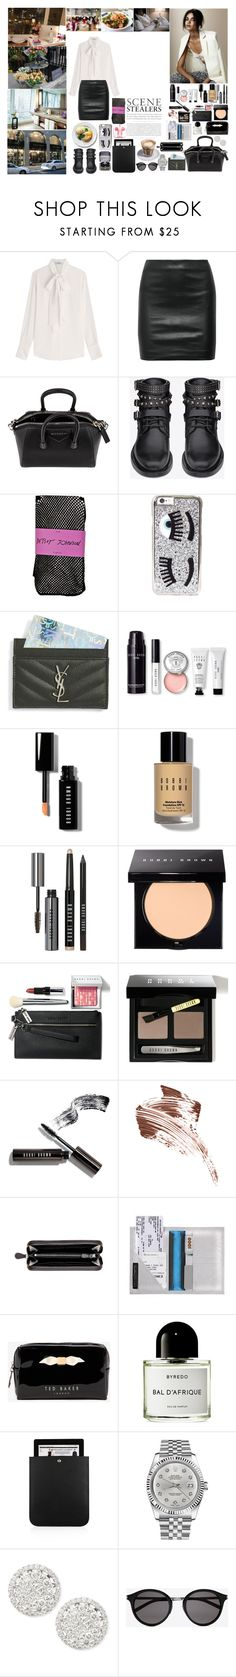 """""""Unbenannt #664"""" by isa1 ❤ liked on Polyvore featuring Valentino, Daydreamer, The Row, Givenchy, Yves Saint Laurent, Betsey Johnson, Chiara Ferragni, Bobbi Brown Cosmetics, Bottega Veneta and Ted Baker"""